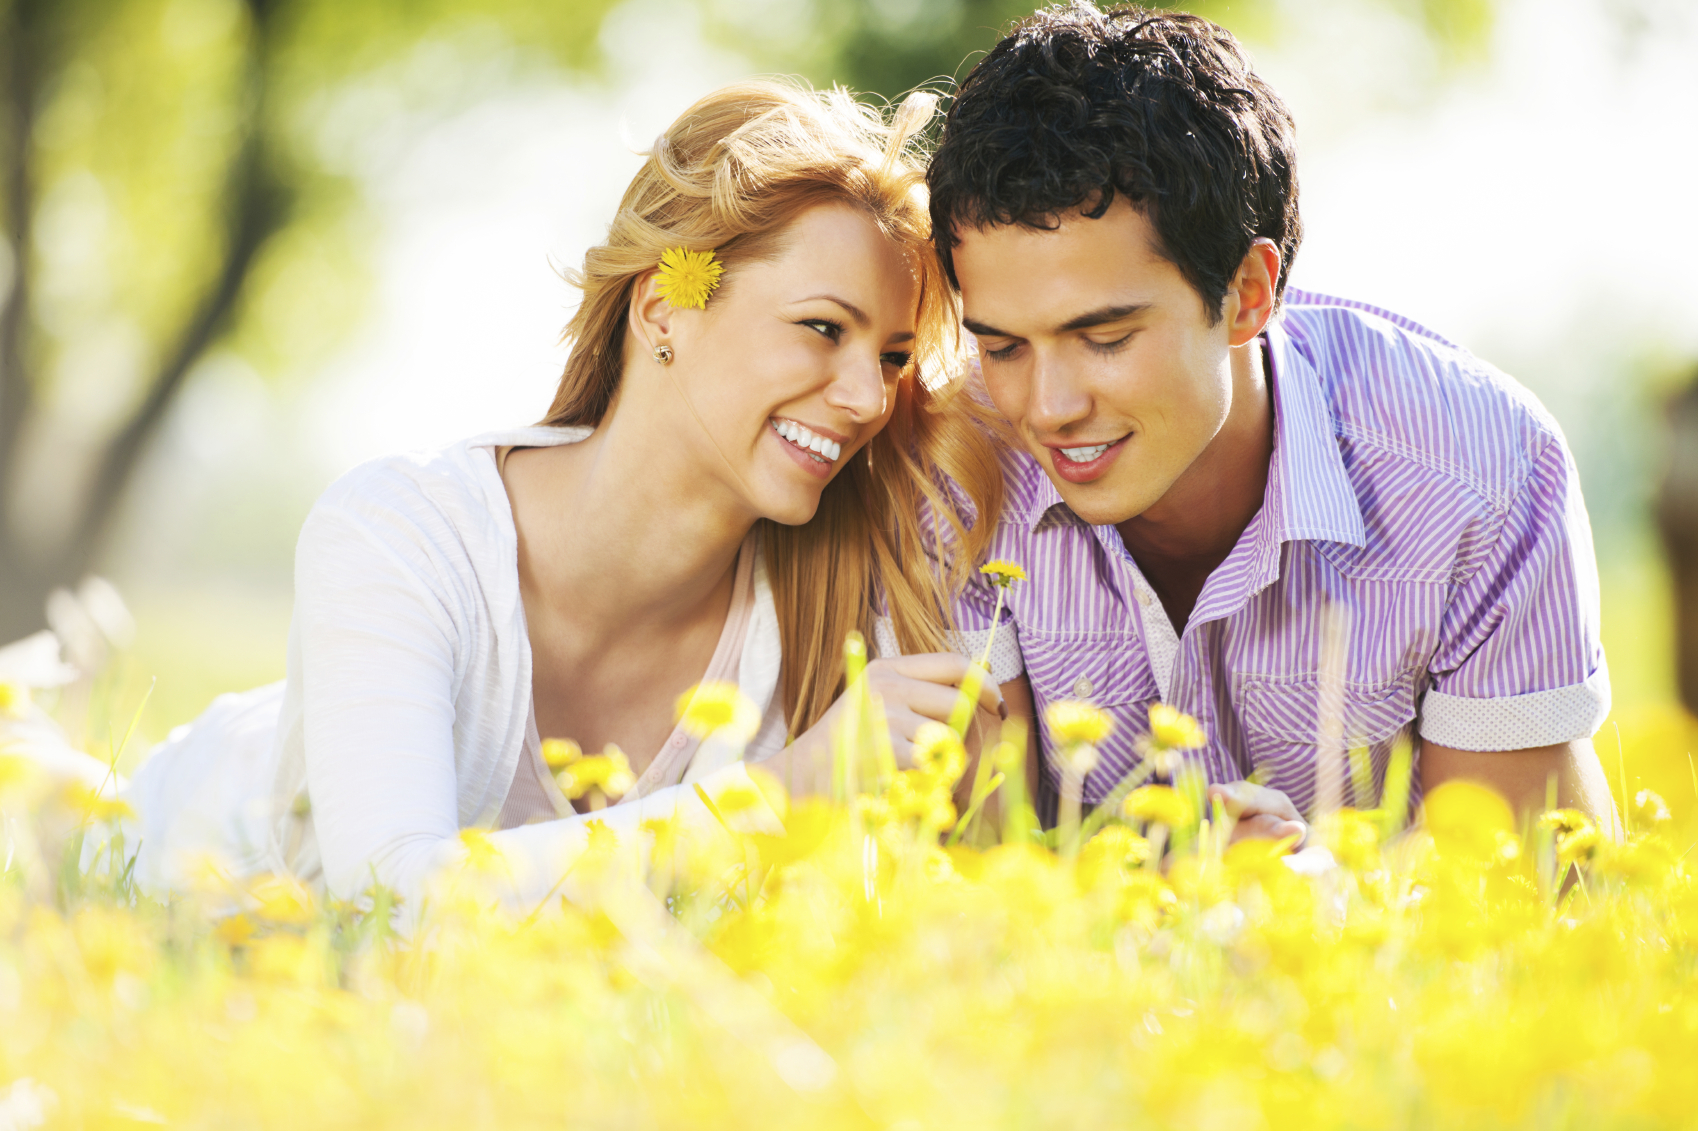 couple-in-grass